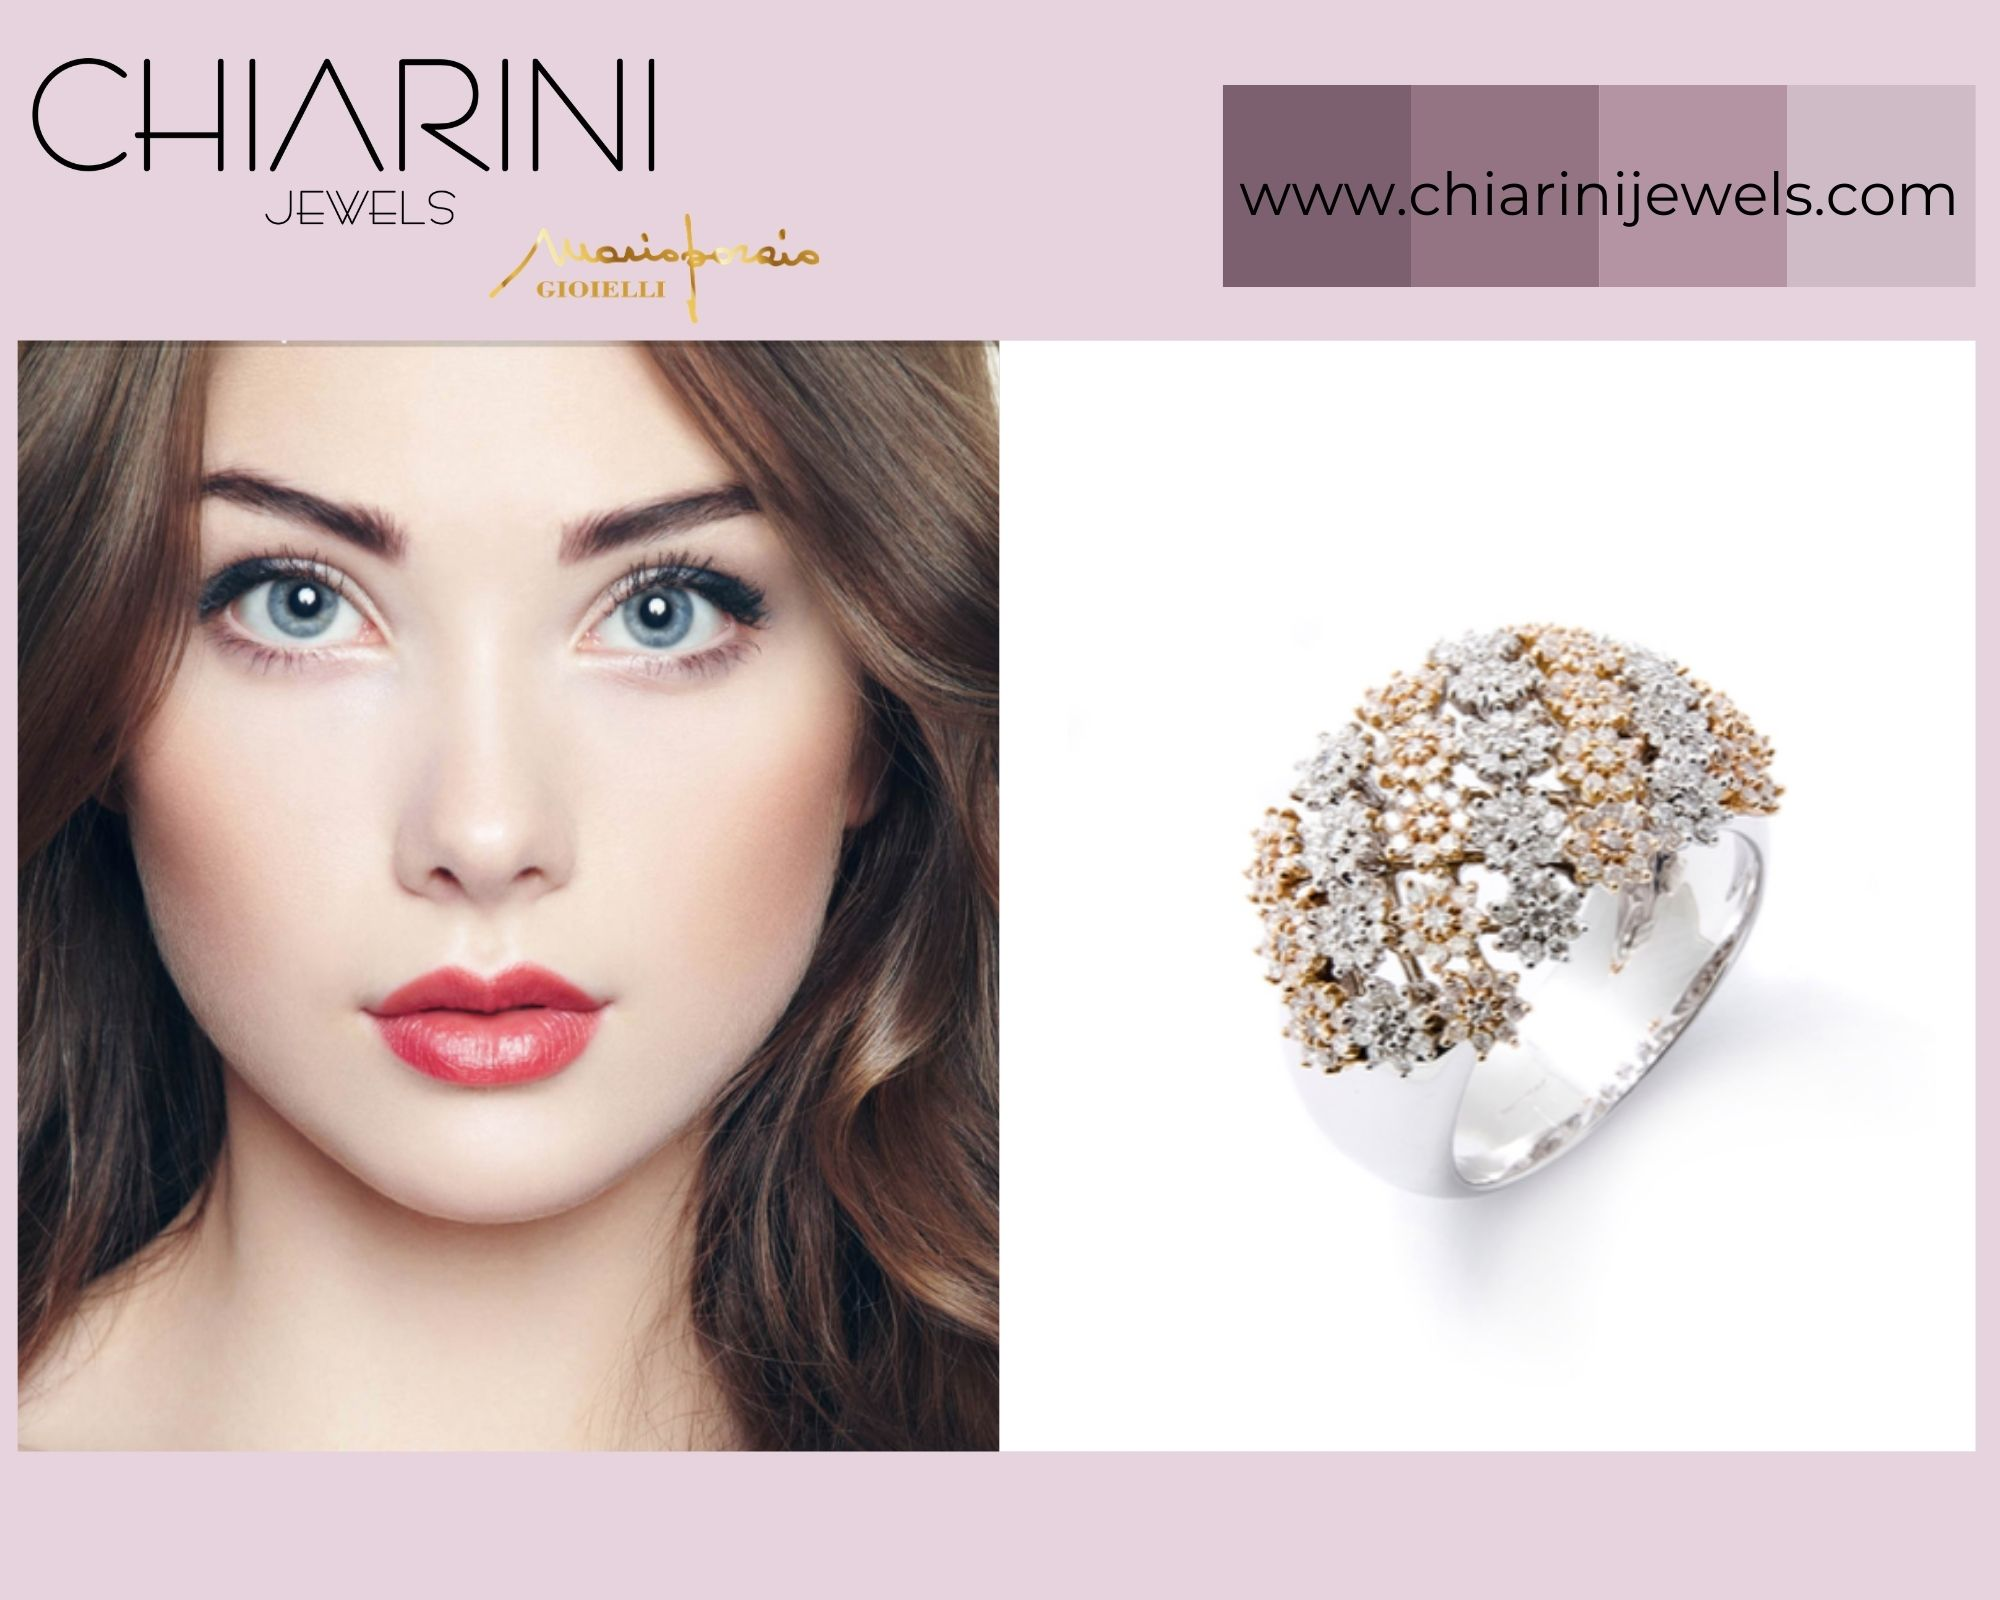 CHIARINI JEWELS